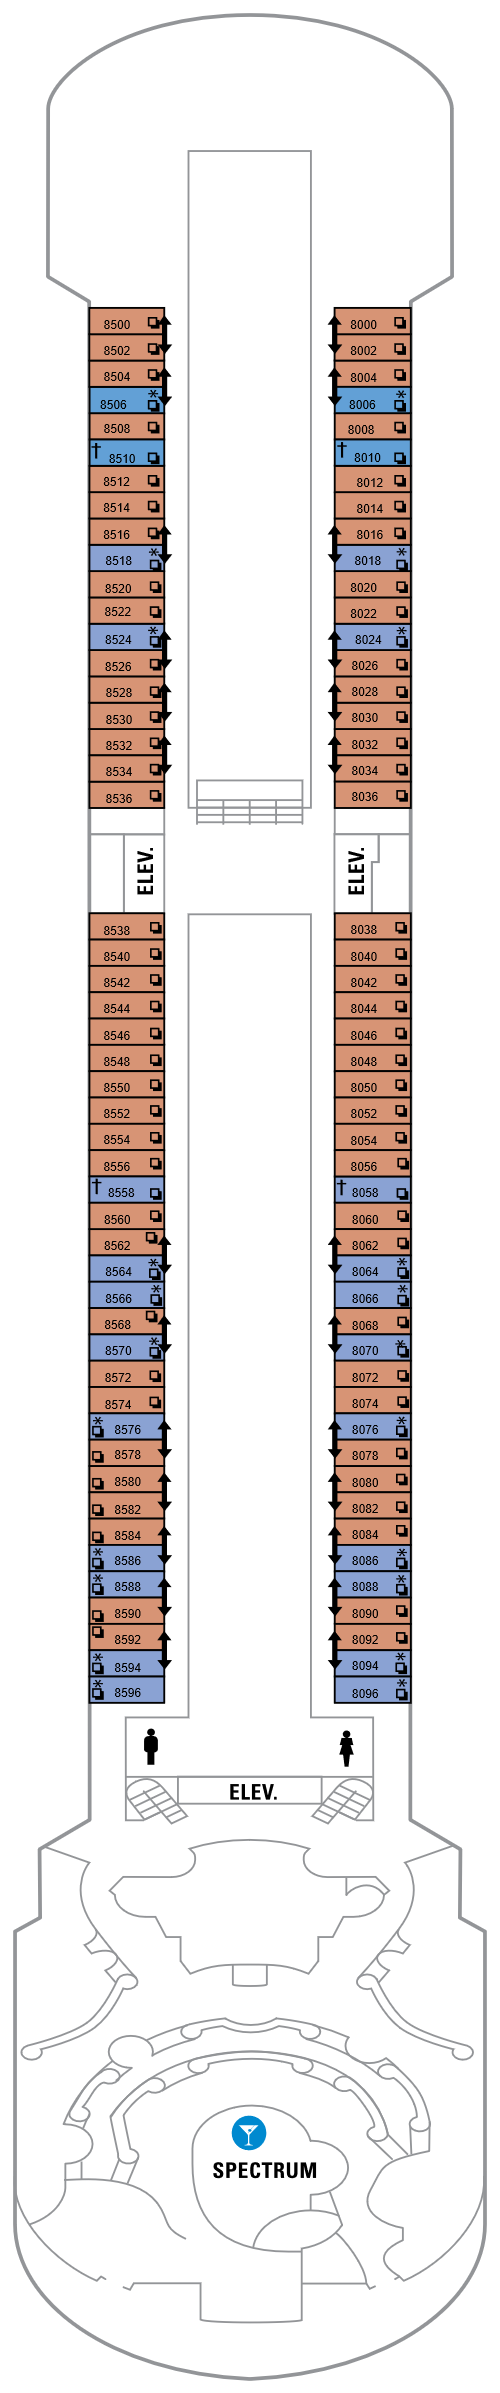 Majesty Of The Seas Deck 8 layout